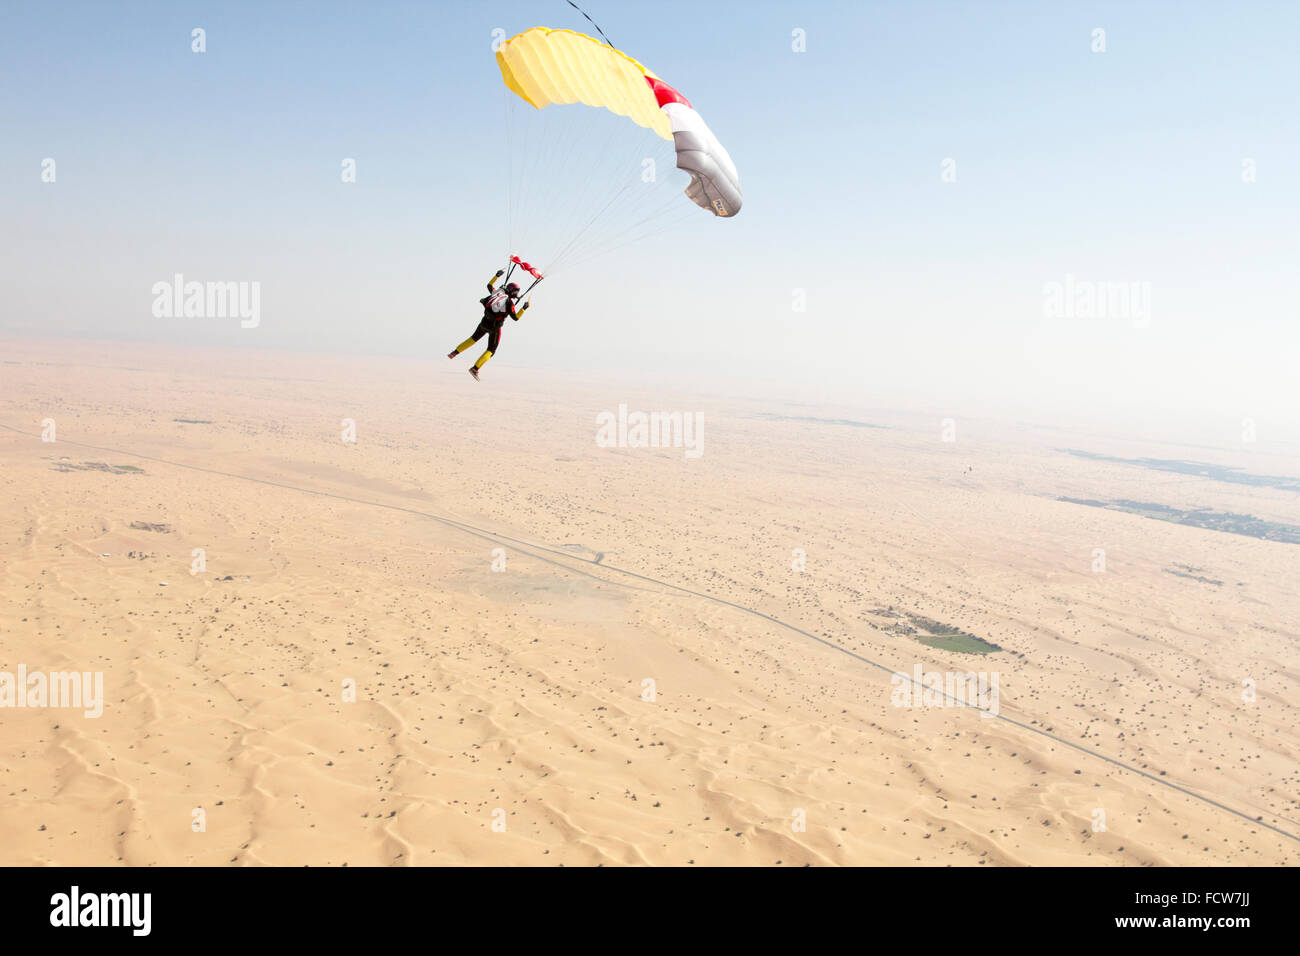 This skydiver girl is flying under his parachute over the Dubai desert area. Thereby she's enjoying the view - Stock Image